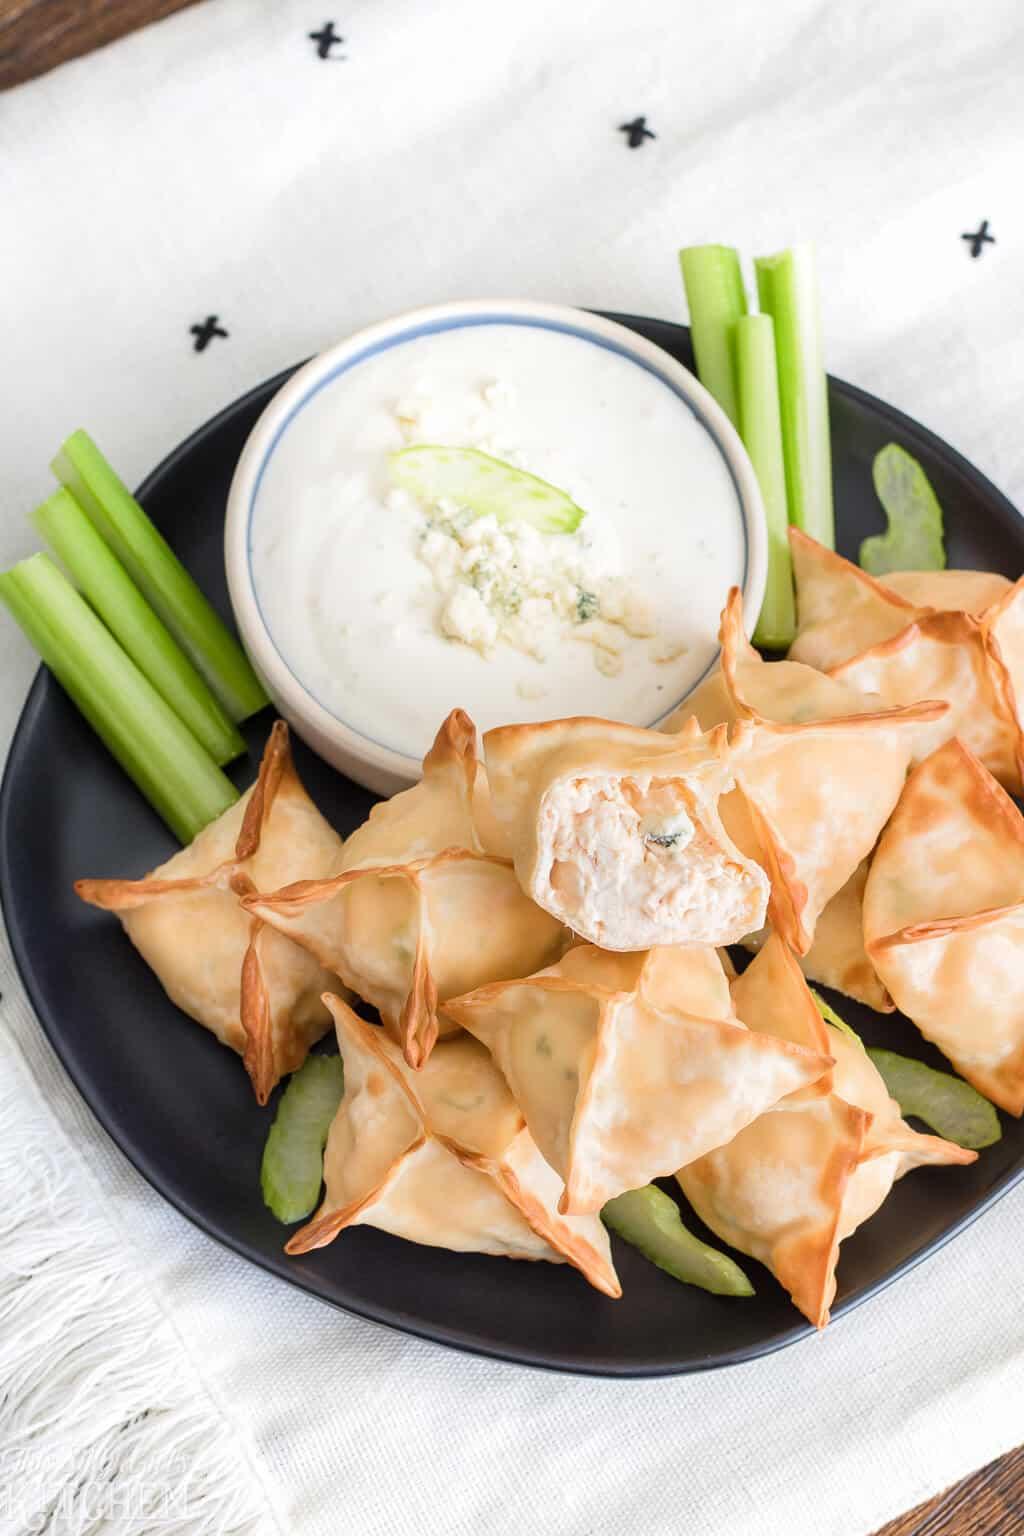 The Best Buffalo Chicken Wontons, only 6 ingredients and ready in 15 minutes, perfect for game day! #Recipe from ThisSillyGirlsKitchen.com #buffalochicken #wontons #airfryer